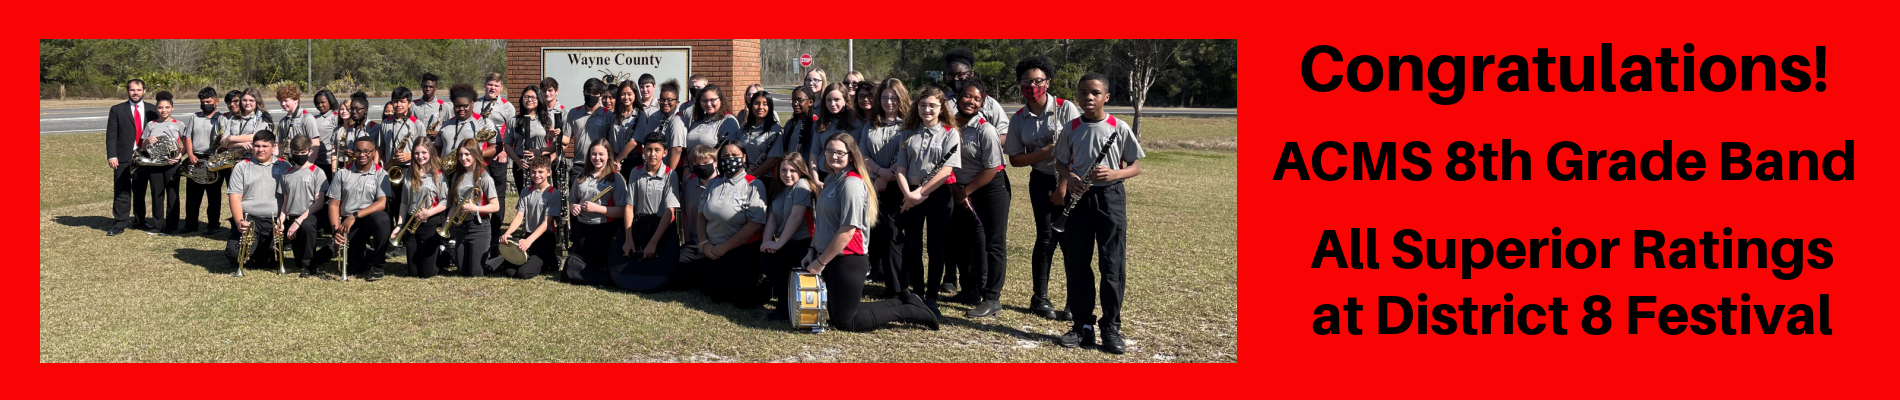 8th Grade Band:  All Superior Ratings at District 8 Festival